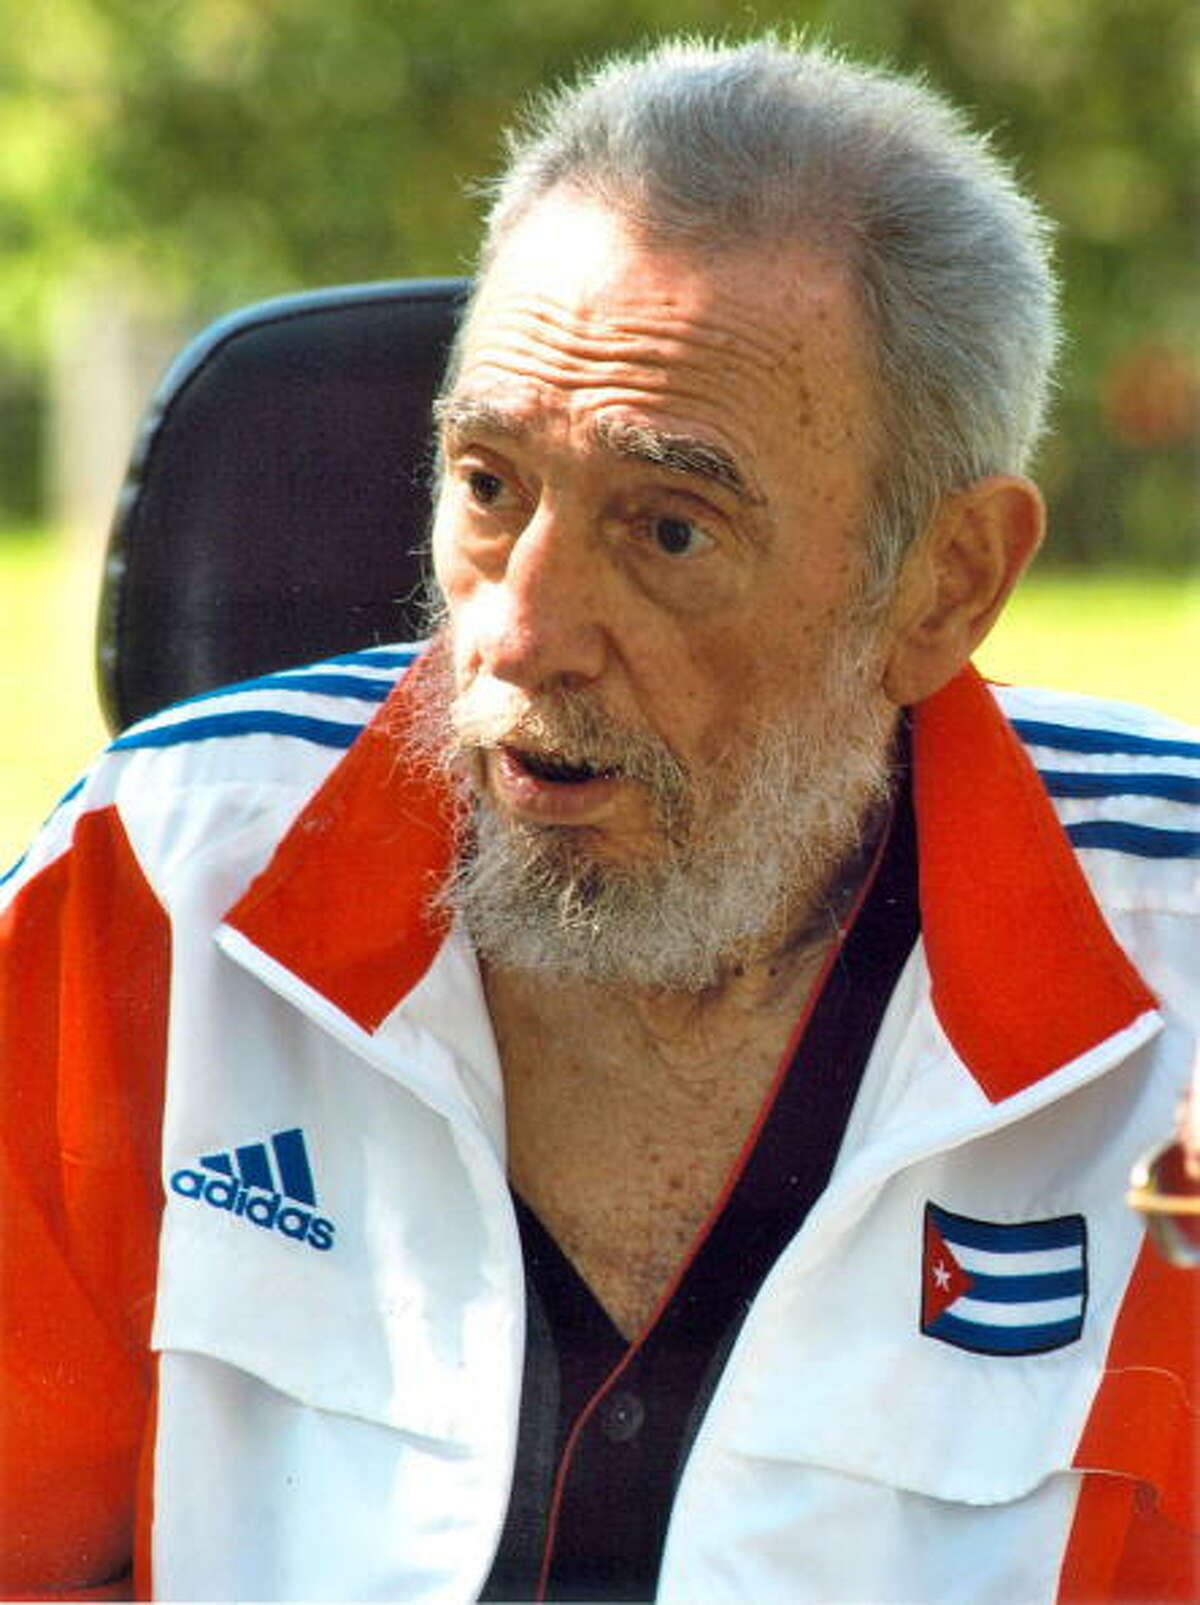 Fidel Castro Venezualan doctor Jose Rafiel Marquina told the media that Fidel Castro, then 86, had suffered a massive stroke and was in a vegetative state in October 2012. The Cuban leader's sister Juanita Castro immediately squashed the rumor, saying that the news was